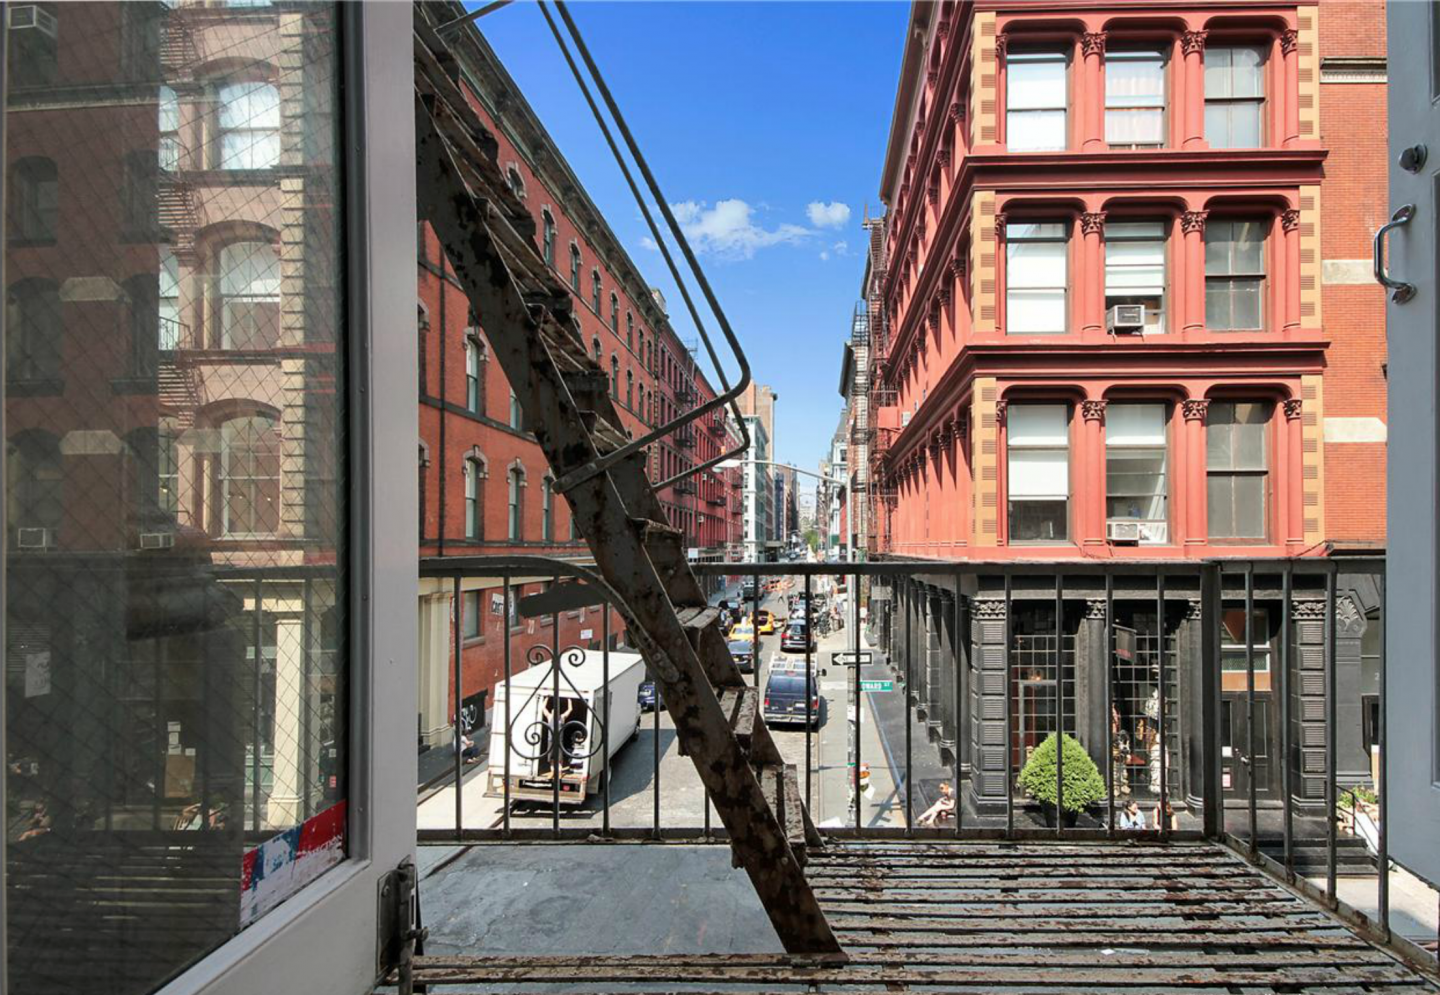 Built in 1915, Jonah Hill's listed apartment occupies the second floor of a boutique cast iron building overlooking Crosby Street and all of its fashionably gorgeous pedestrians.